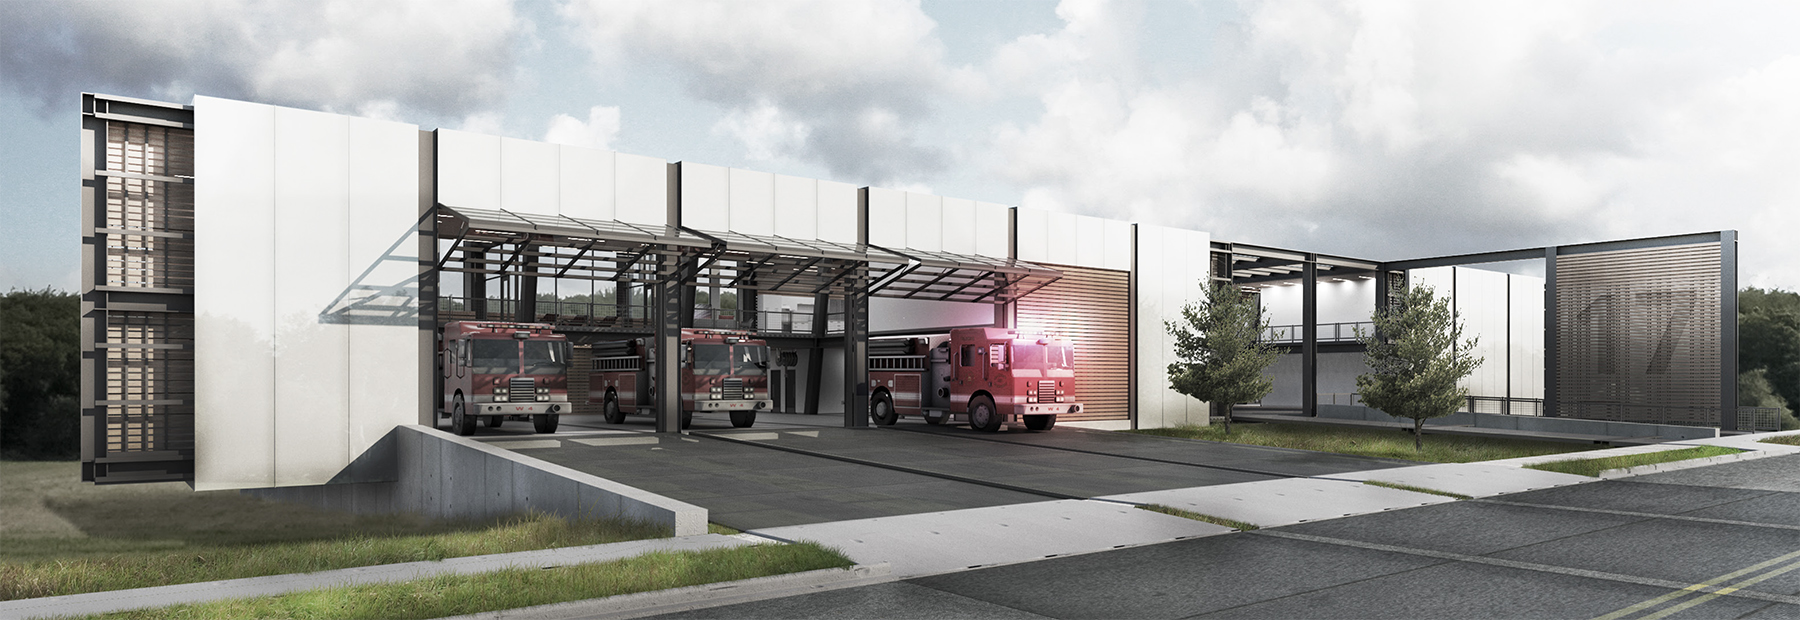 Corriher_Final_Reduced Fire Station 17.jpg